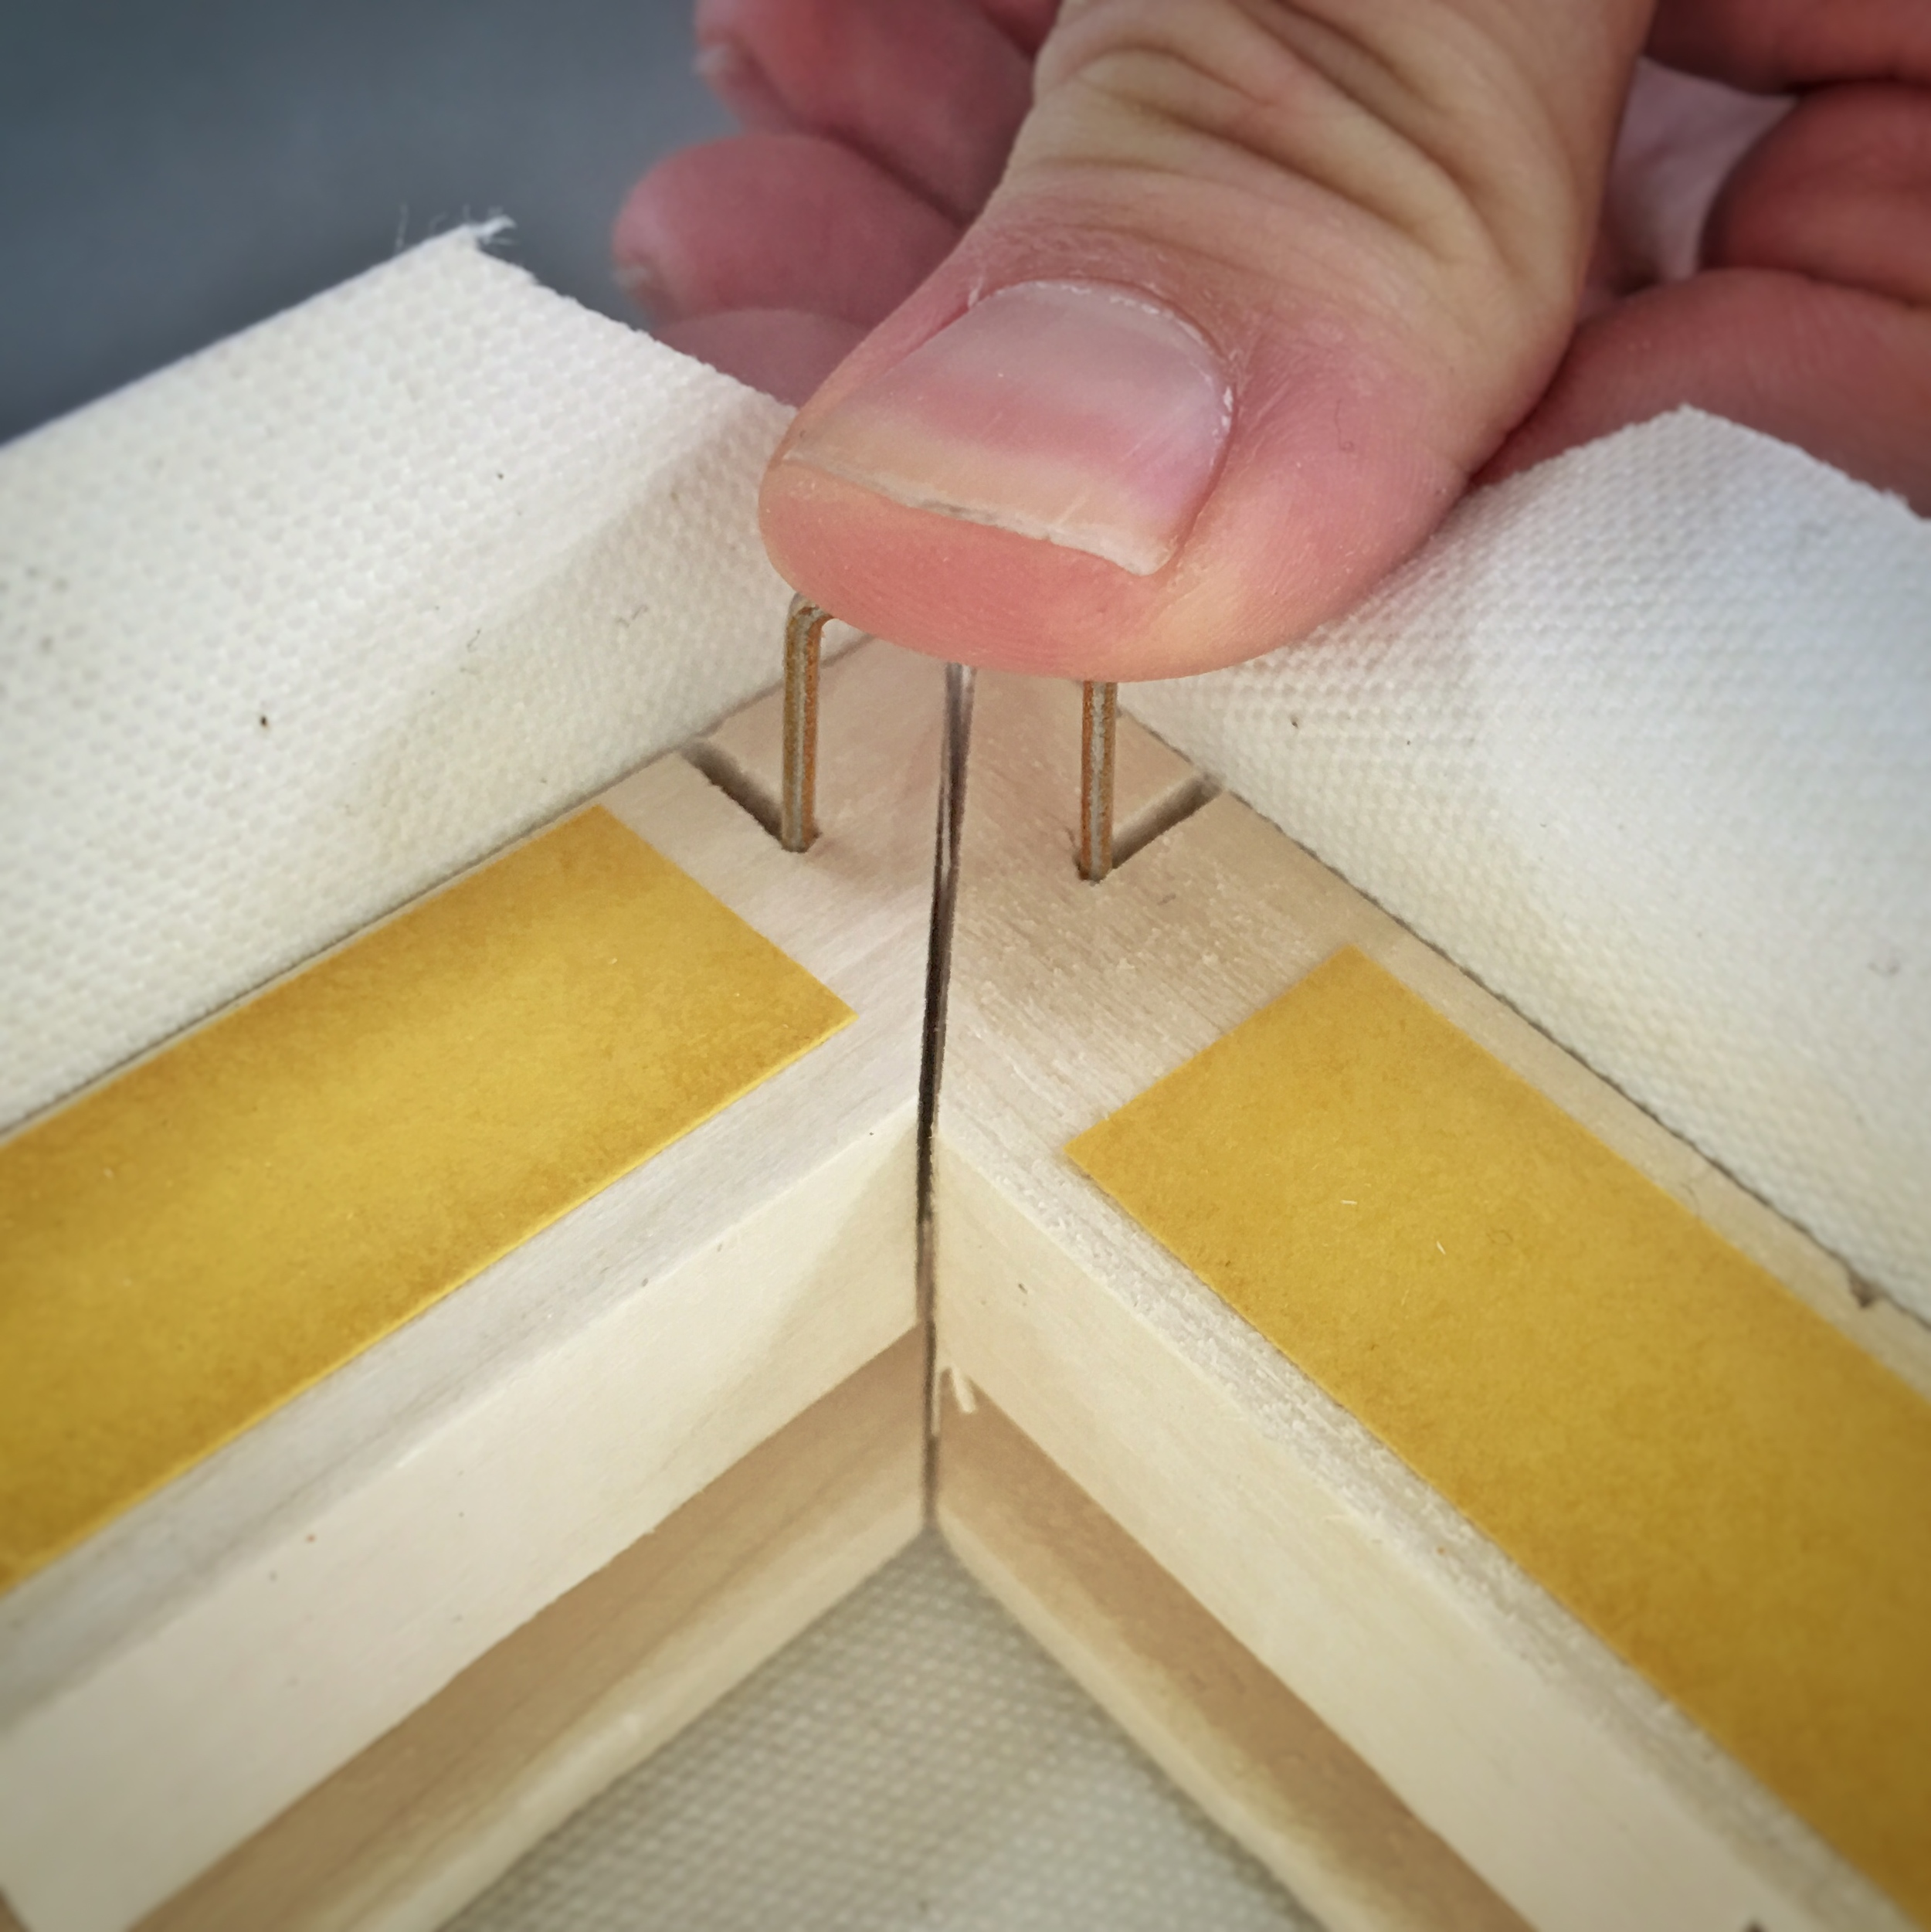 U shaped fasteners allow the canvas to fold into the miter of the stretcher frame creating neat and perfectly folded corners.